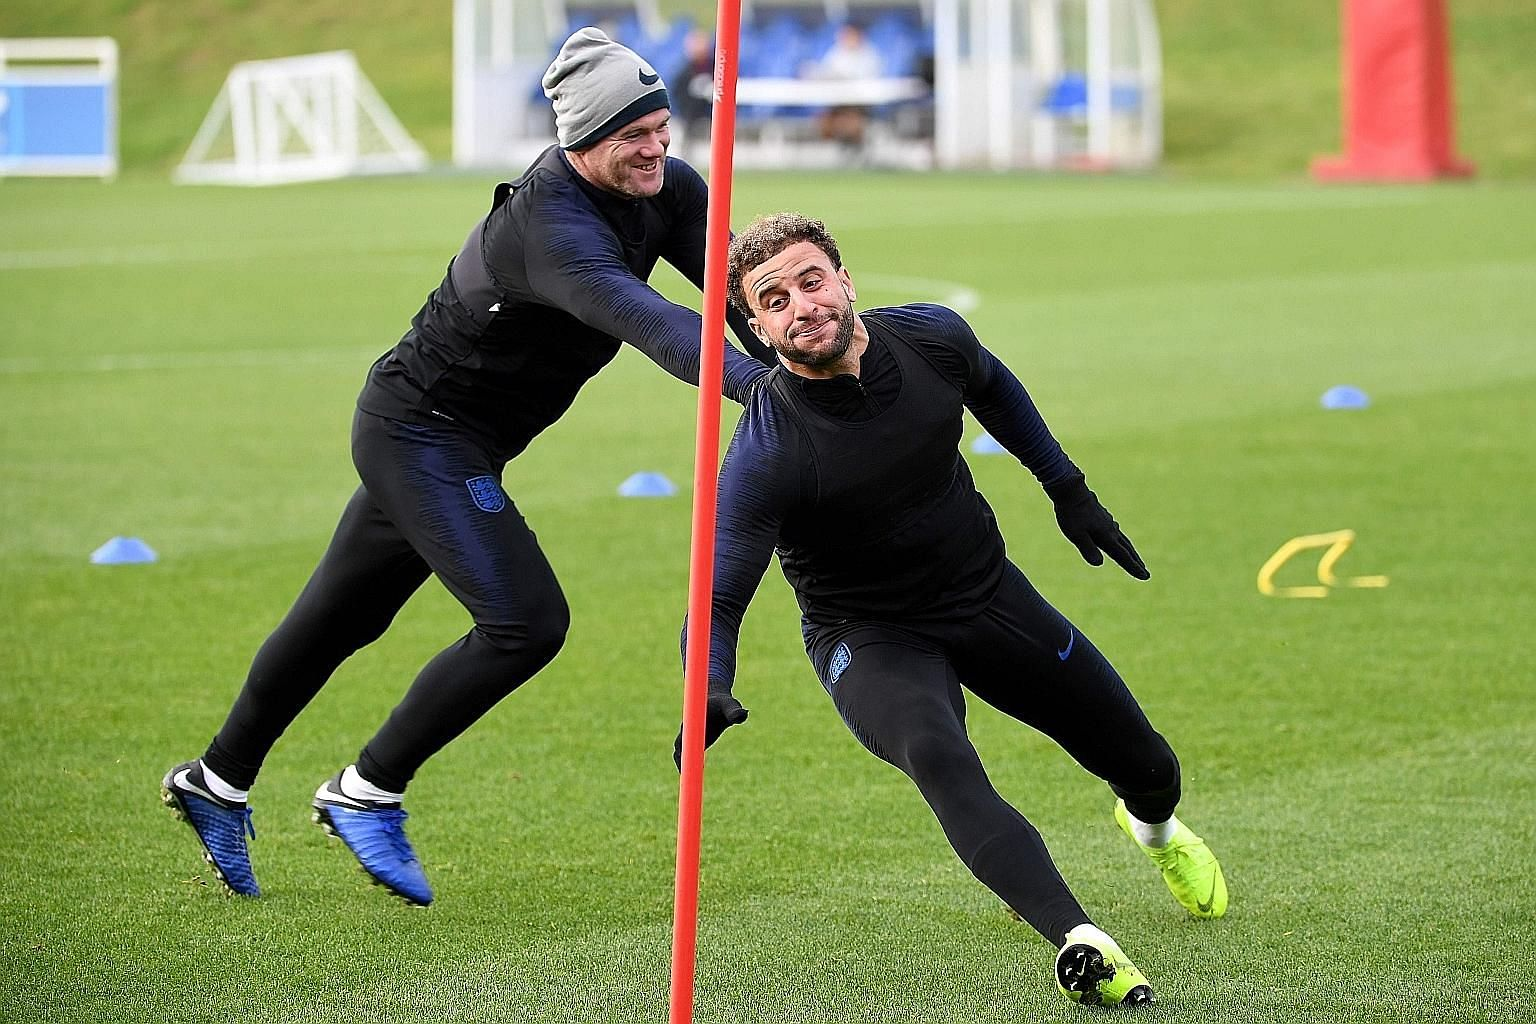 Wayne Rooney having fun with Kyle Walker during an England training session at St George's Park in Burton-on-Trent on Wednesday, ahead of their international friendly against the US in which Rooney is set to make a cameo final appearance.